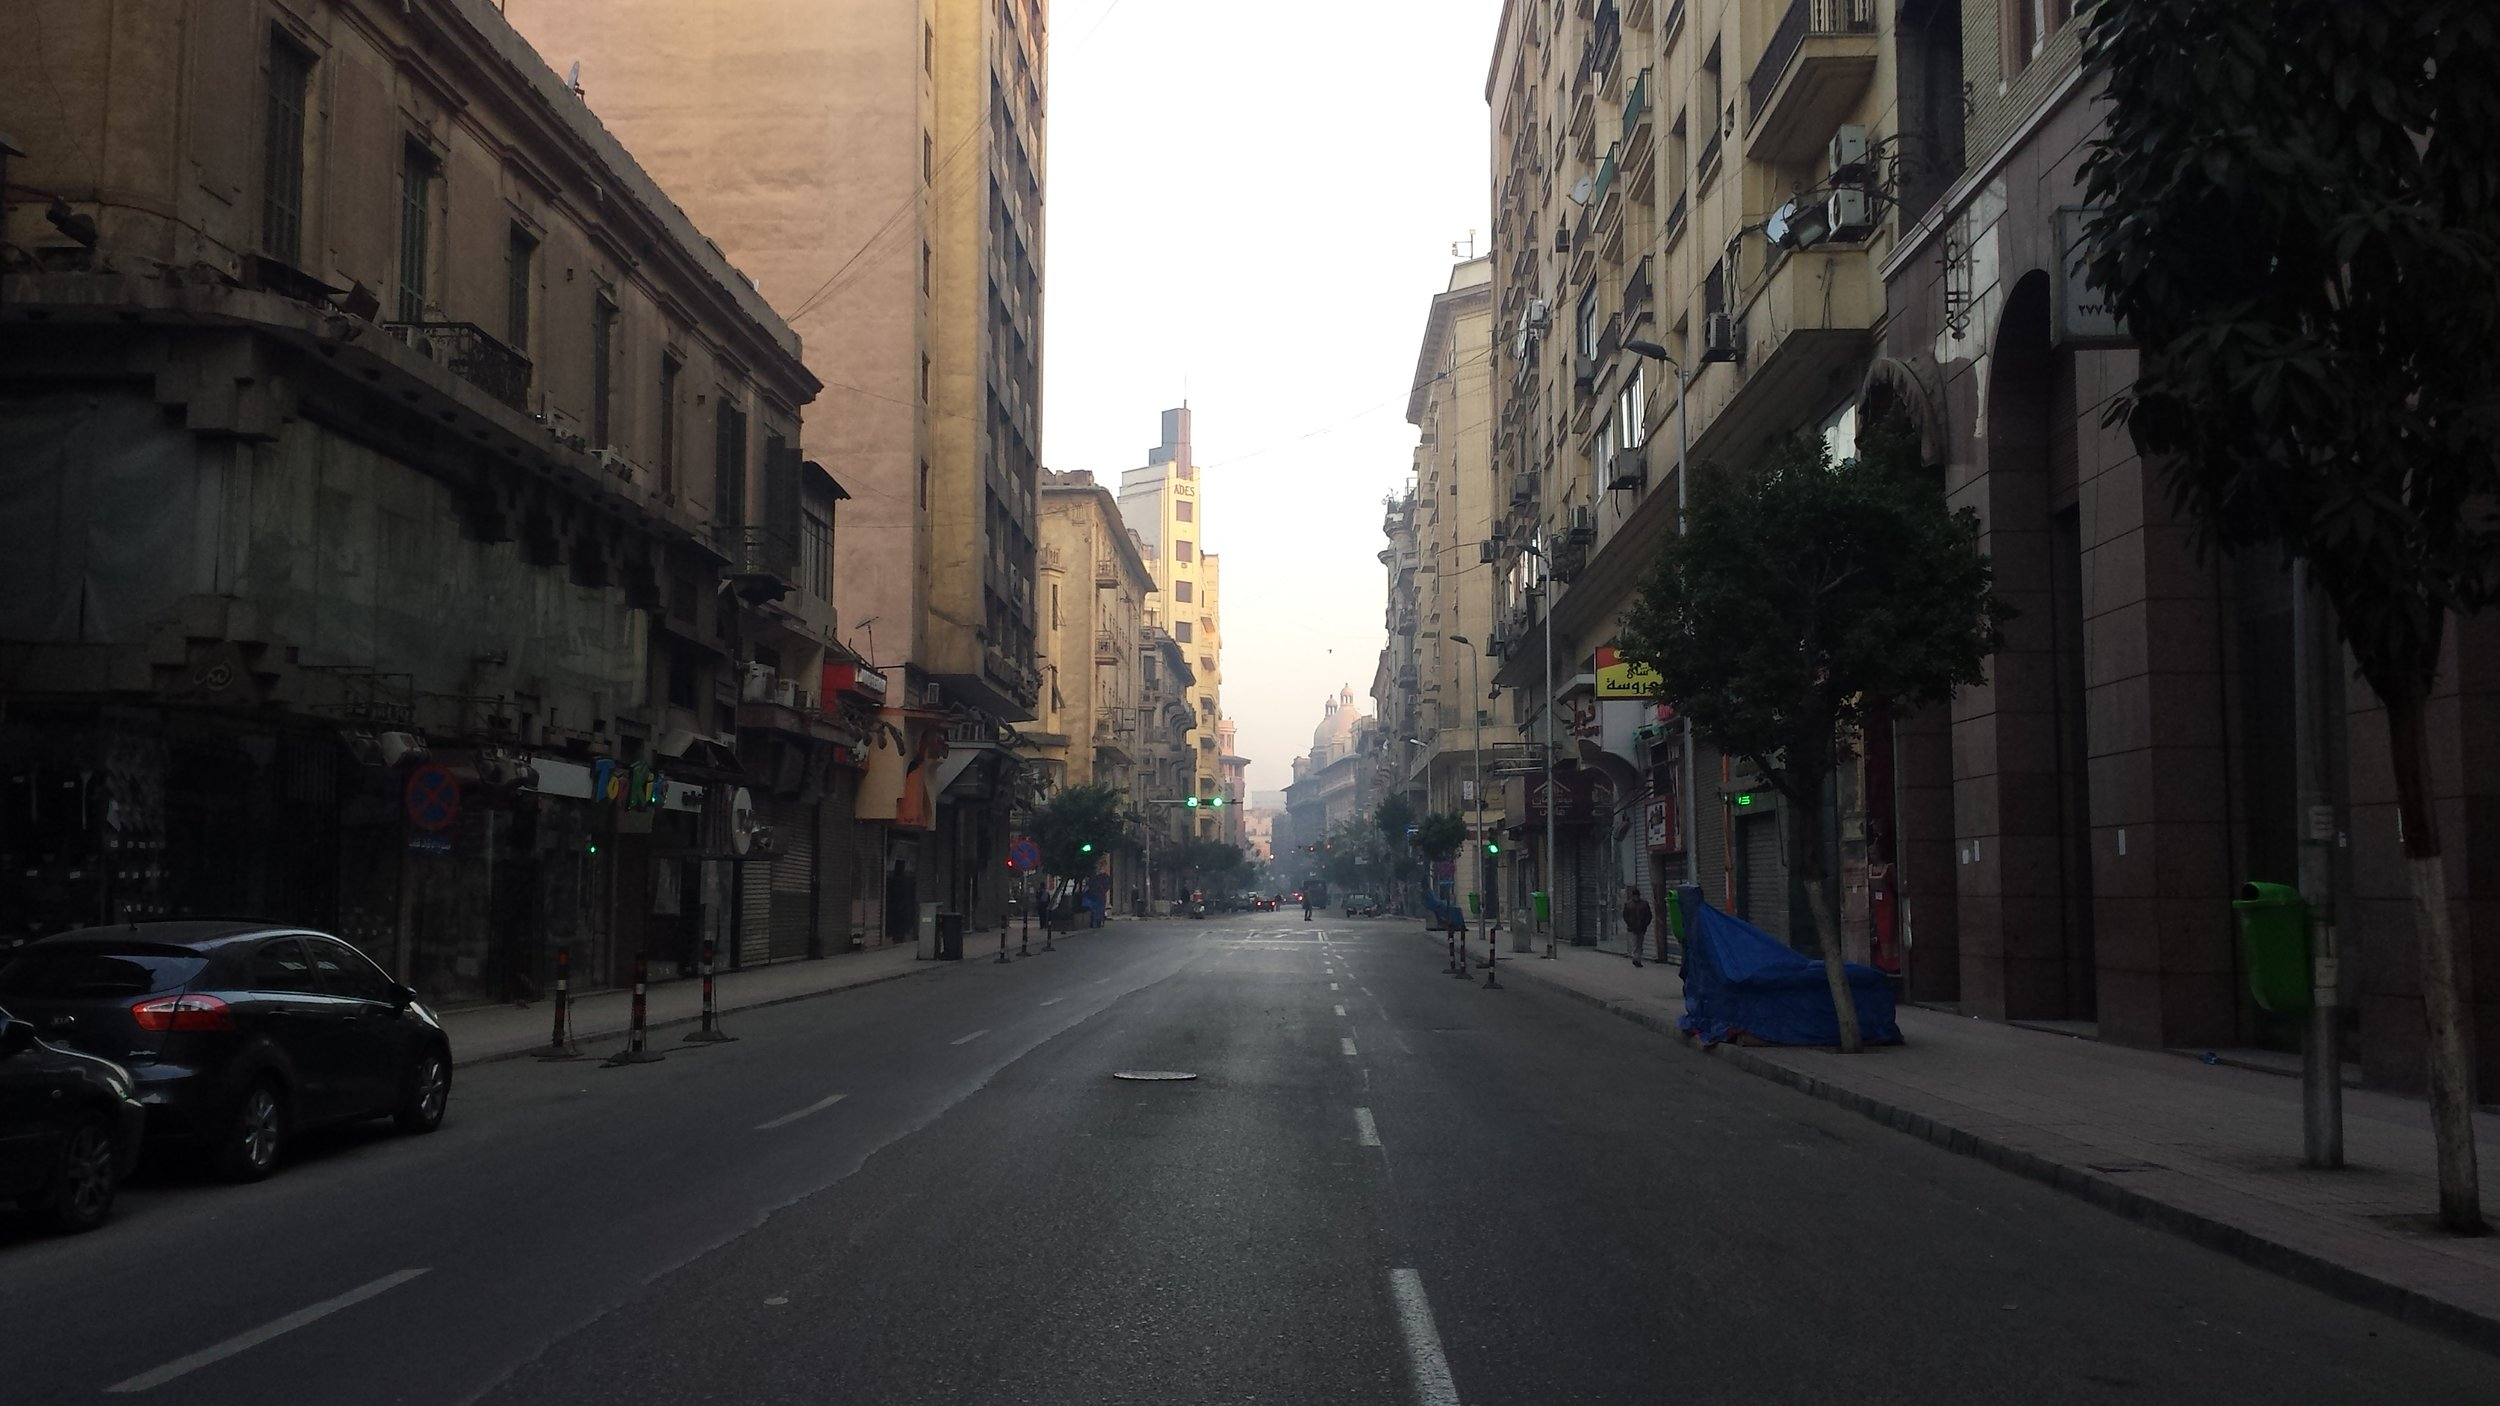 Morning in Cairo, and all the lights are green.